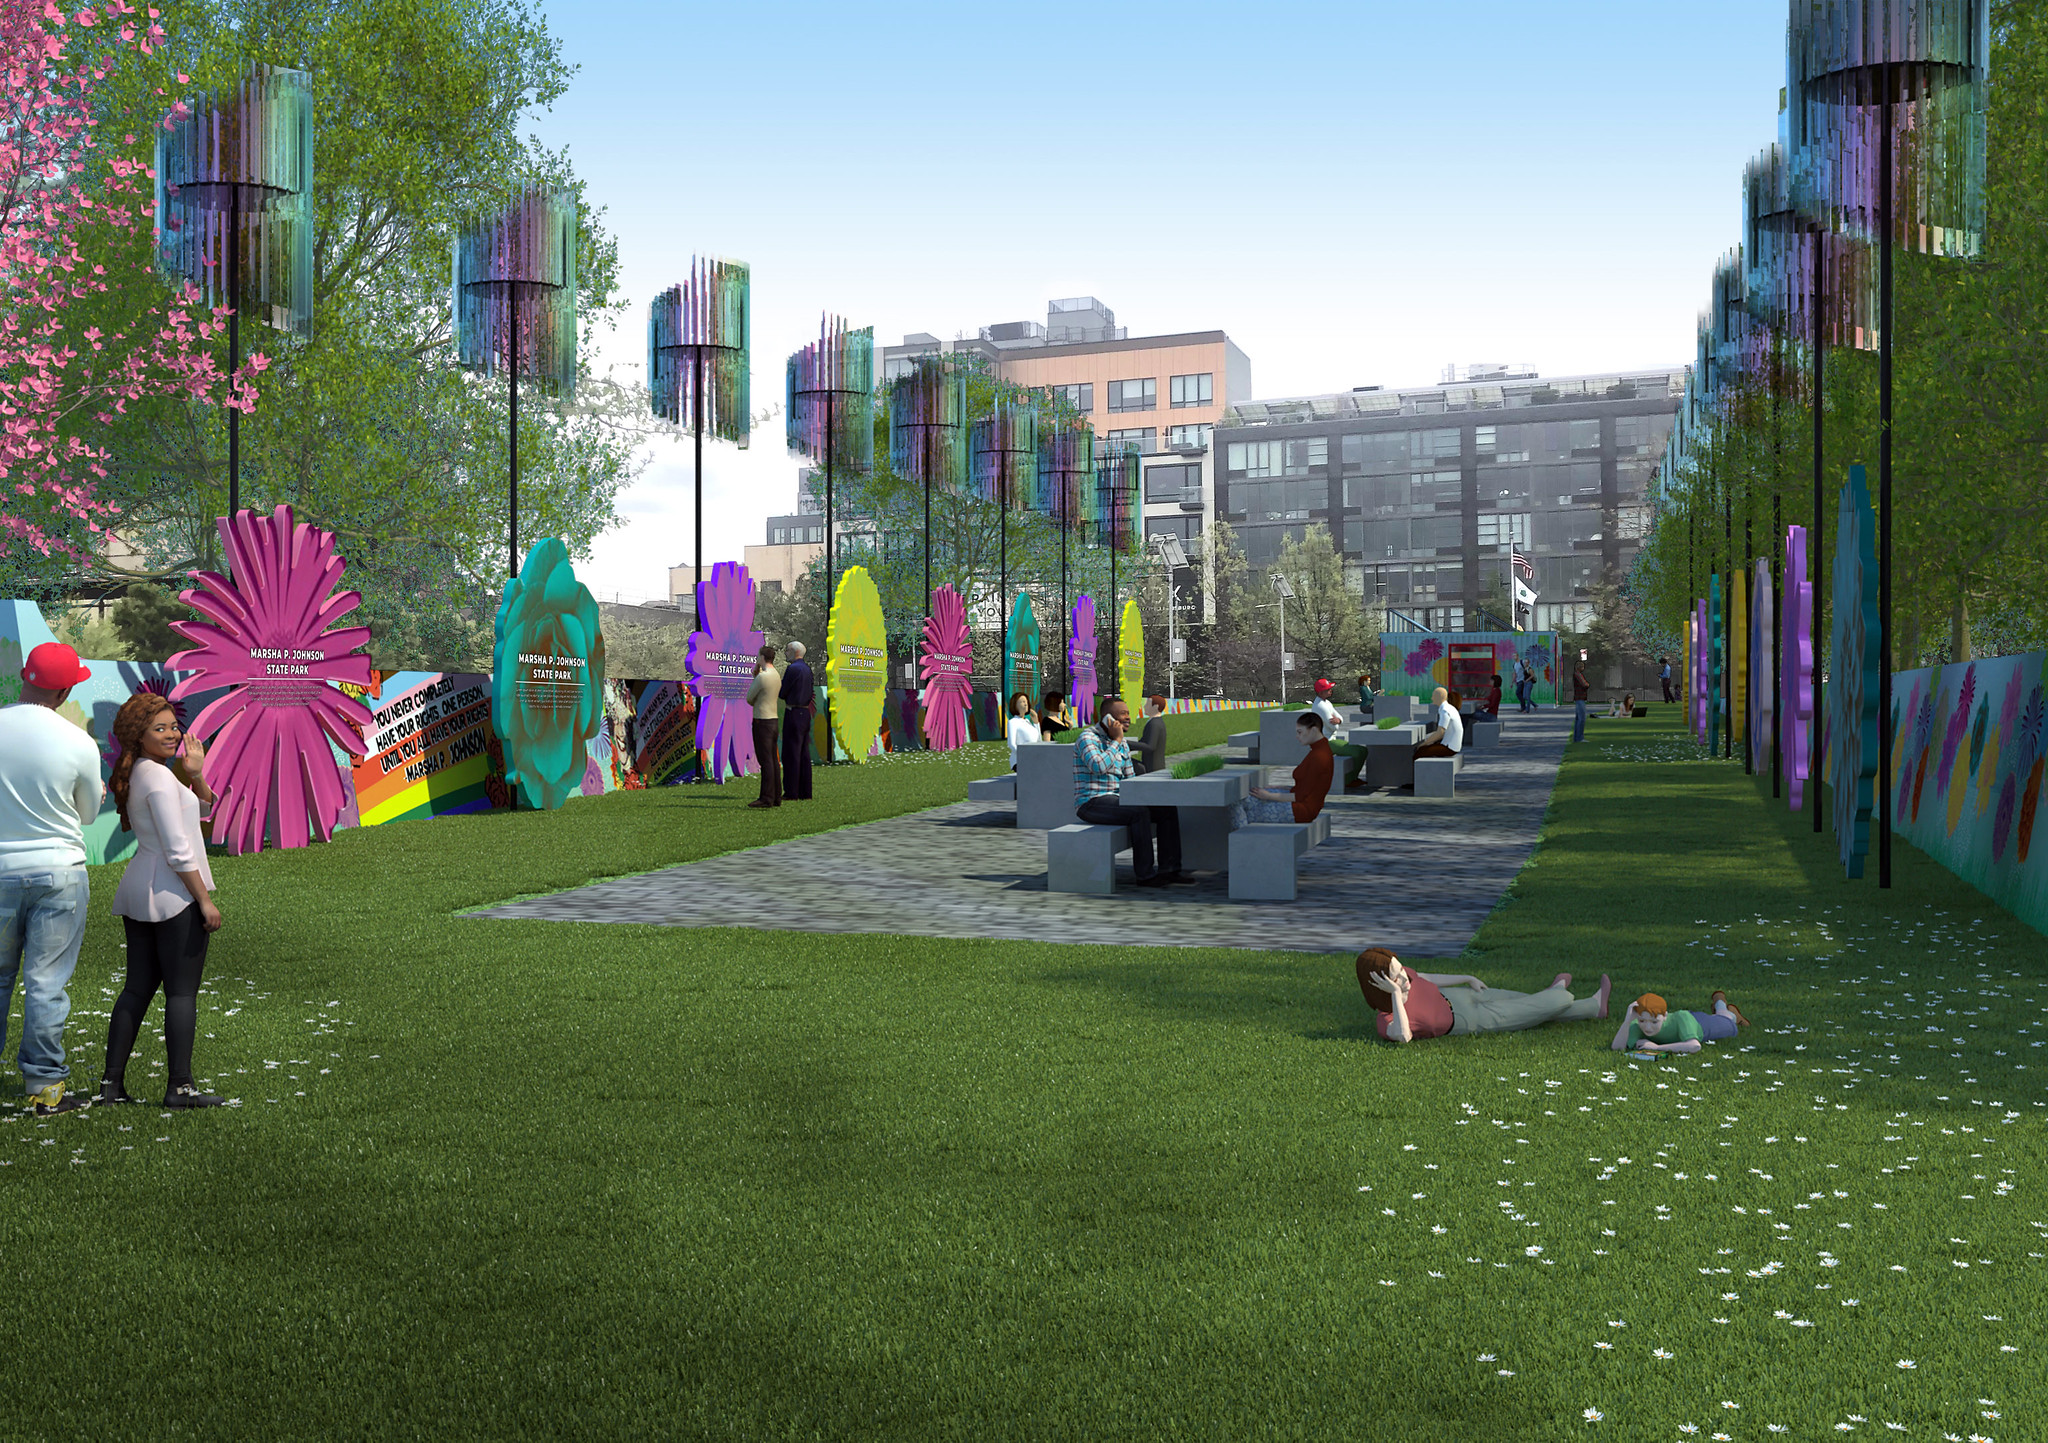 illustration of a colorful state park in nyc